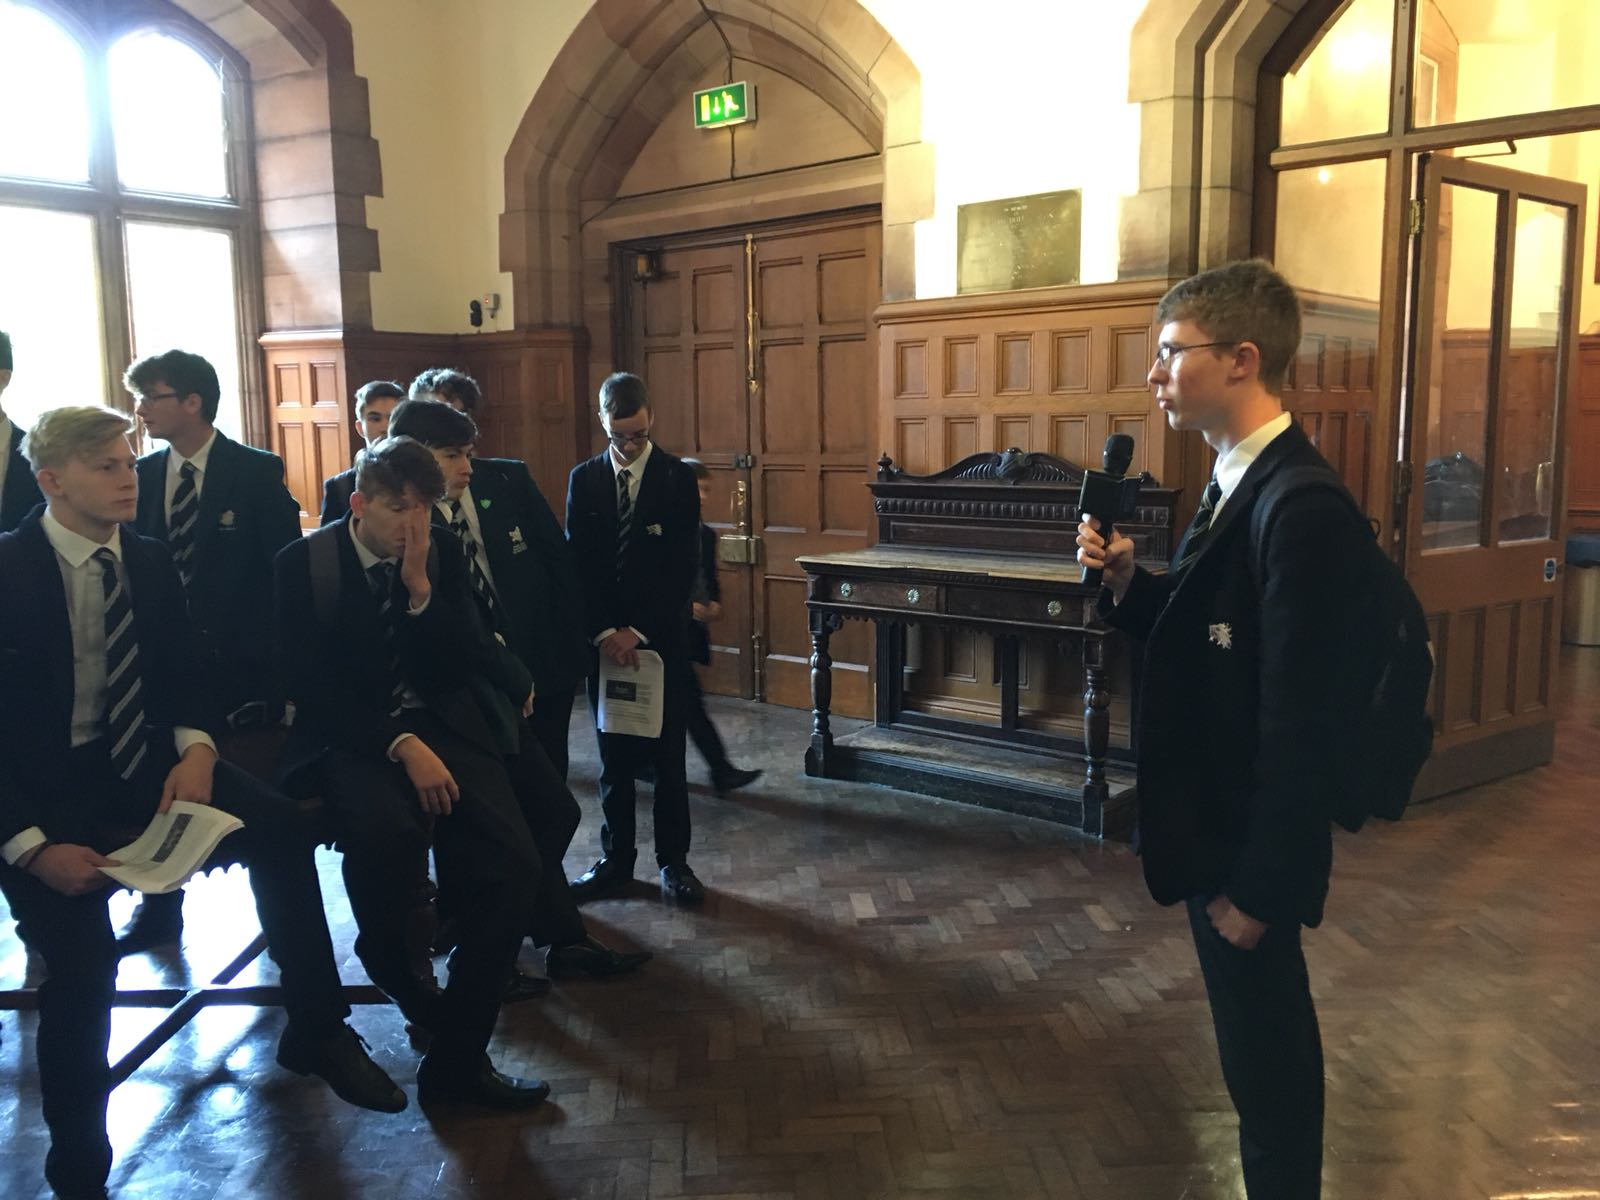 Pupils rehearsing their tours.